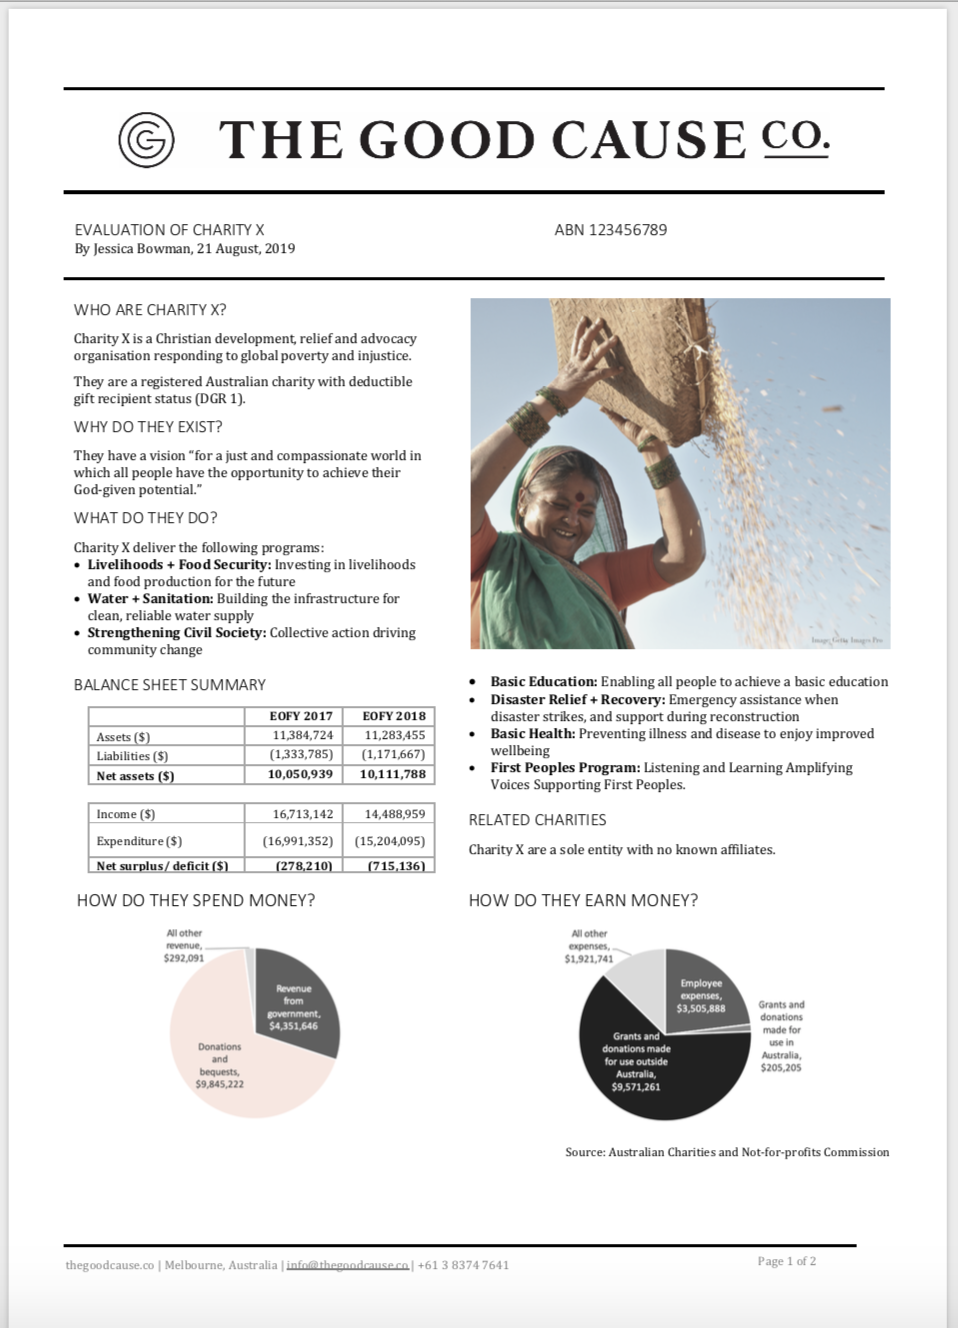 Independent Evaluation Sample Charity Page 1